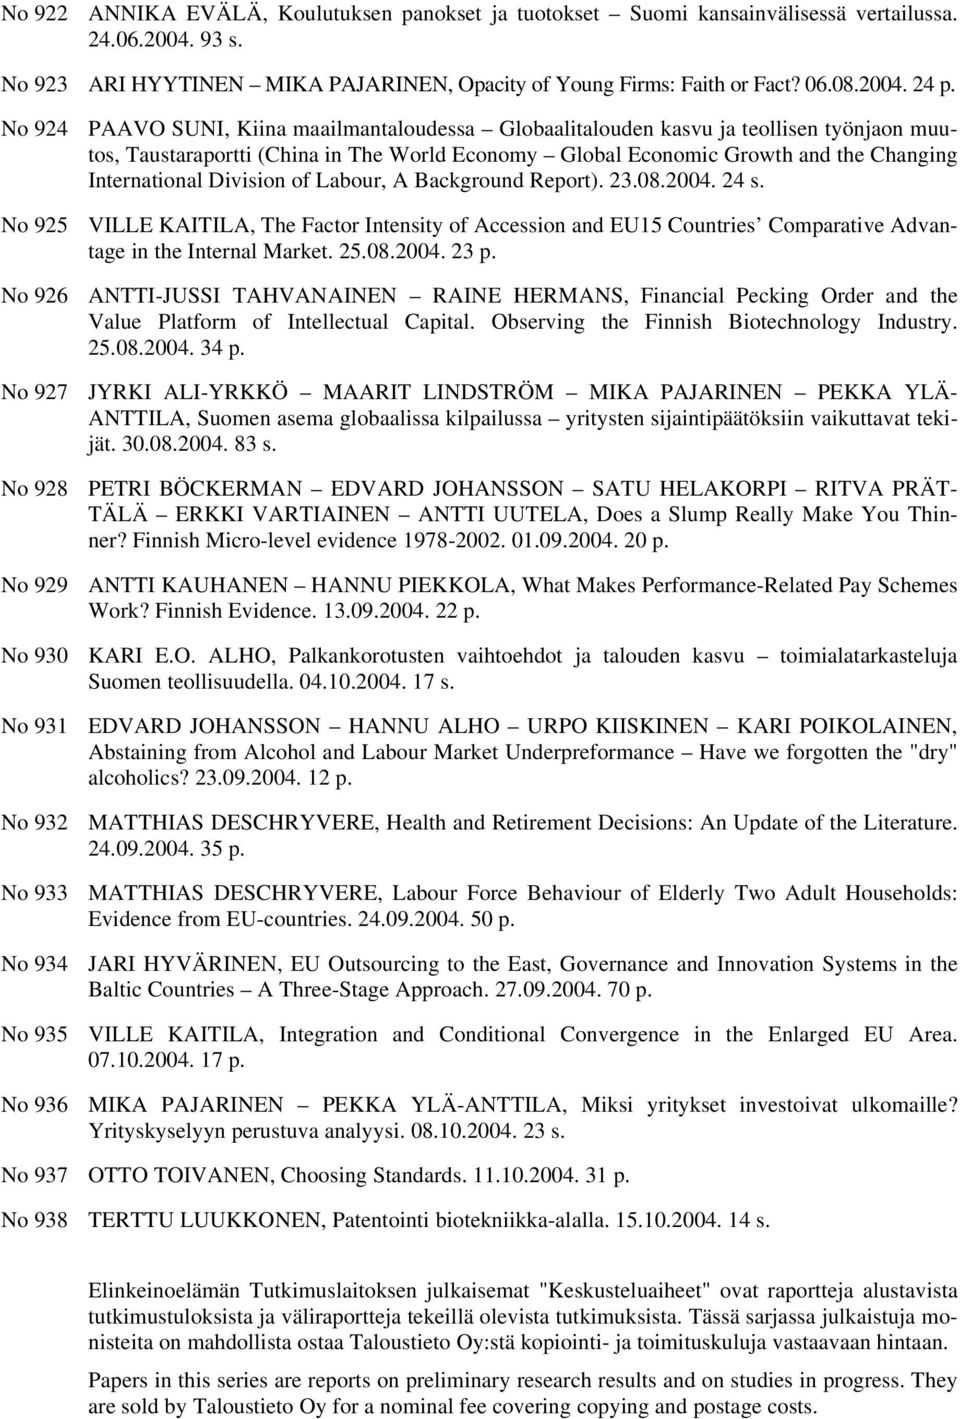 Division of Labour, A Background Report). 23.08.2004. 24 s. No 925 VILLE KAITILA, The Factor Intensity of Accession and EU15 Countries Comparative Advantage in the Internal Market. 25.08.2004. 23 p.